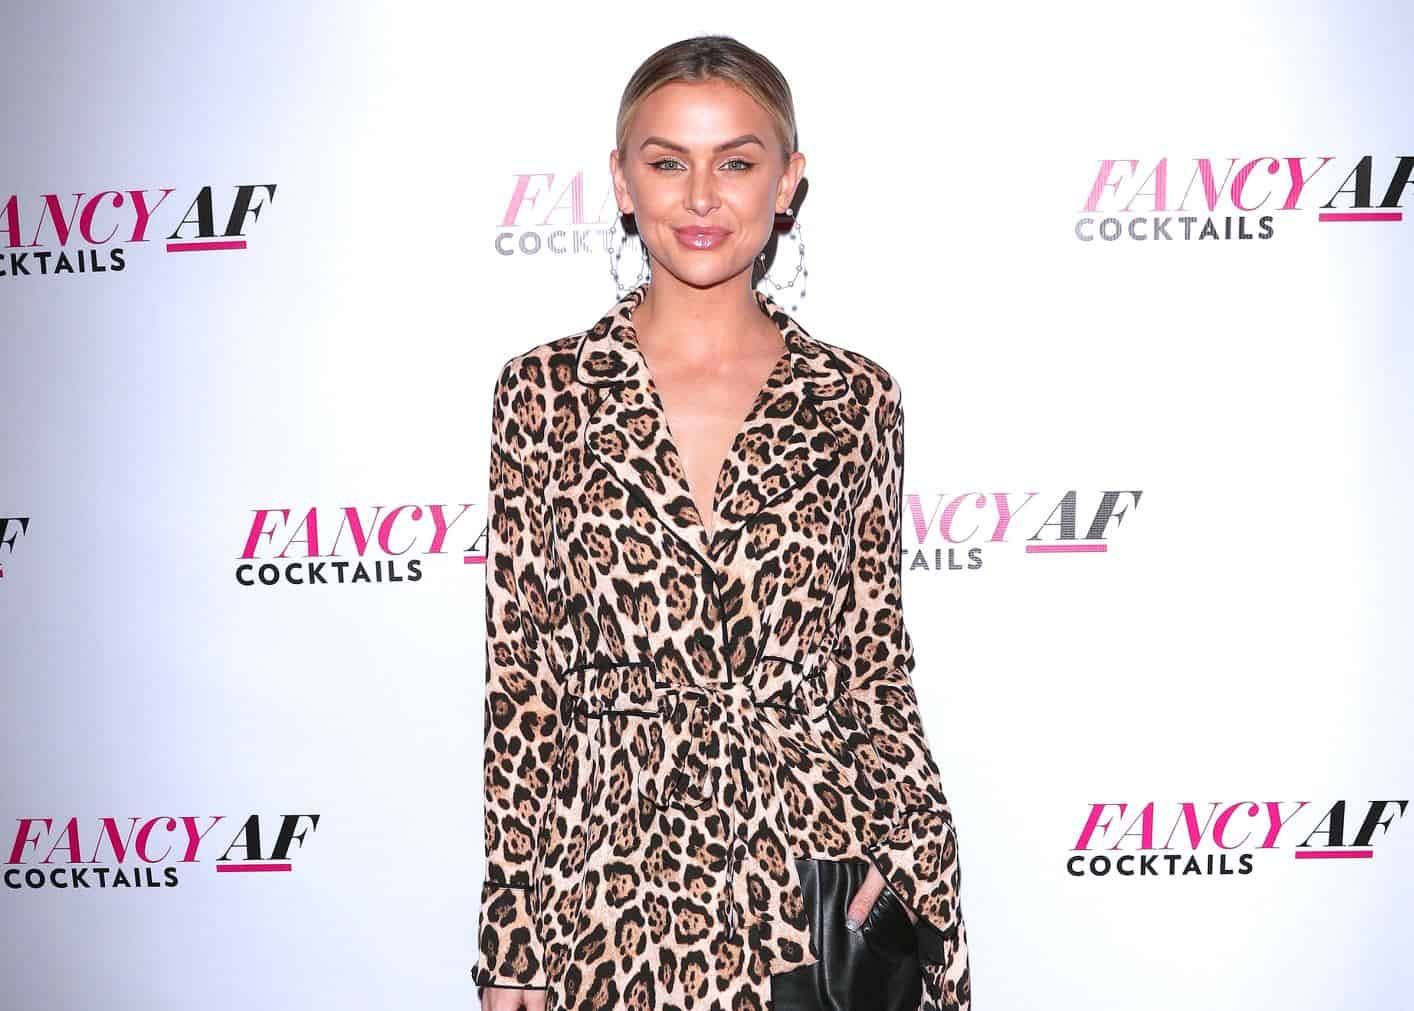 PHOTO: Lala Kent Shares First Pic of Daughter Ocean's Sweet Face as Vanderpump Rules Star Reveals When the Baby Girl Was Born and How Much She Weighed After Her Weeks-Early Arrival